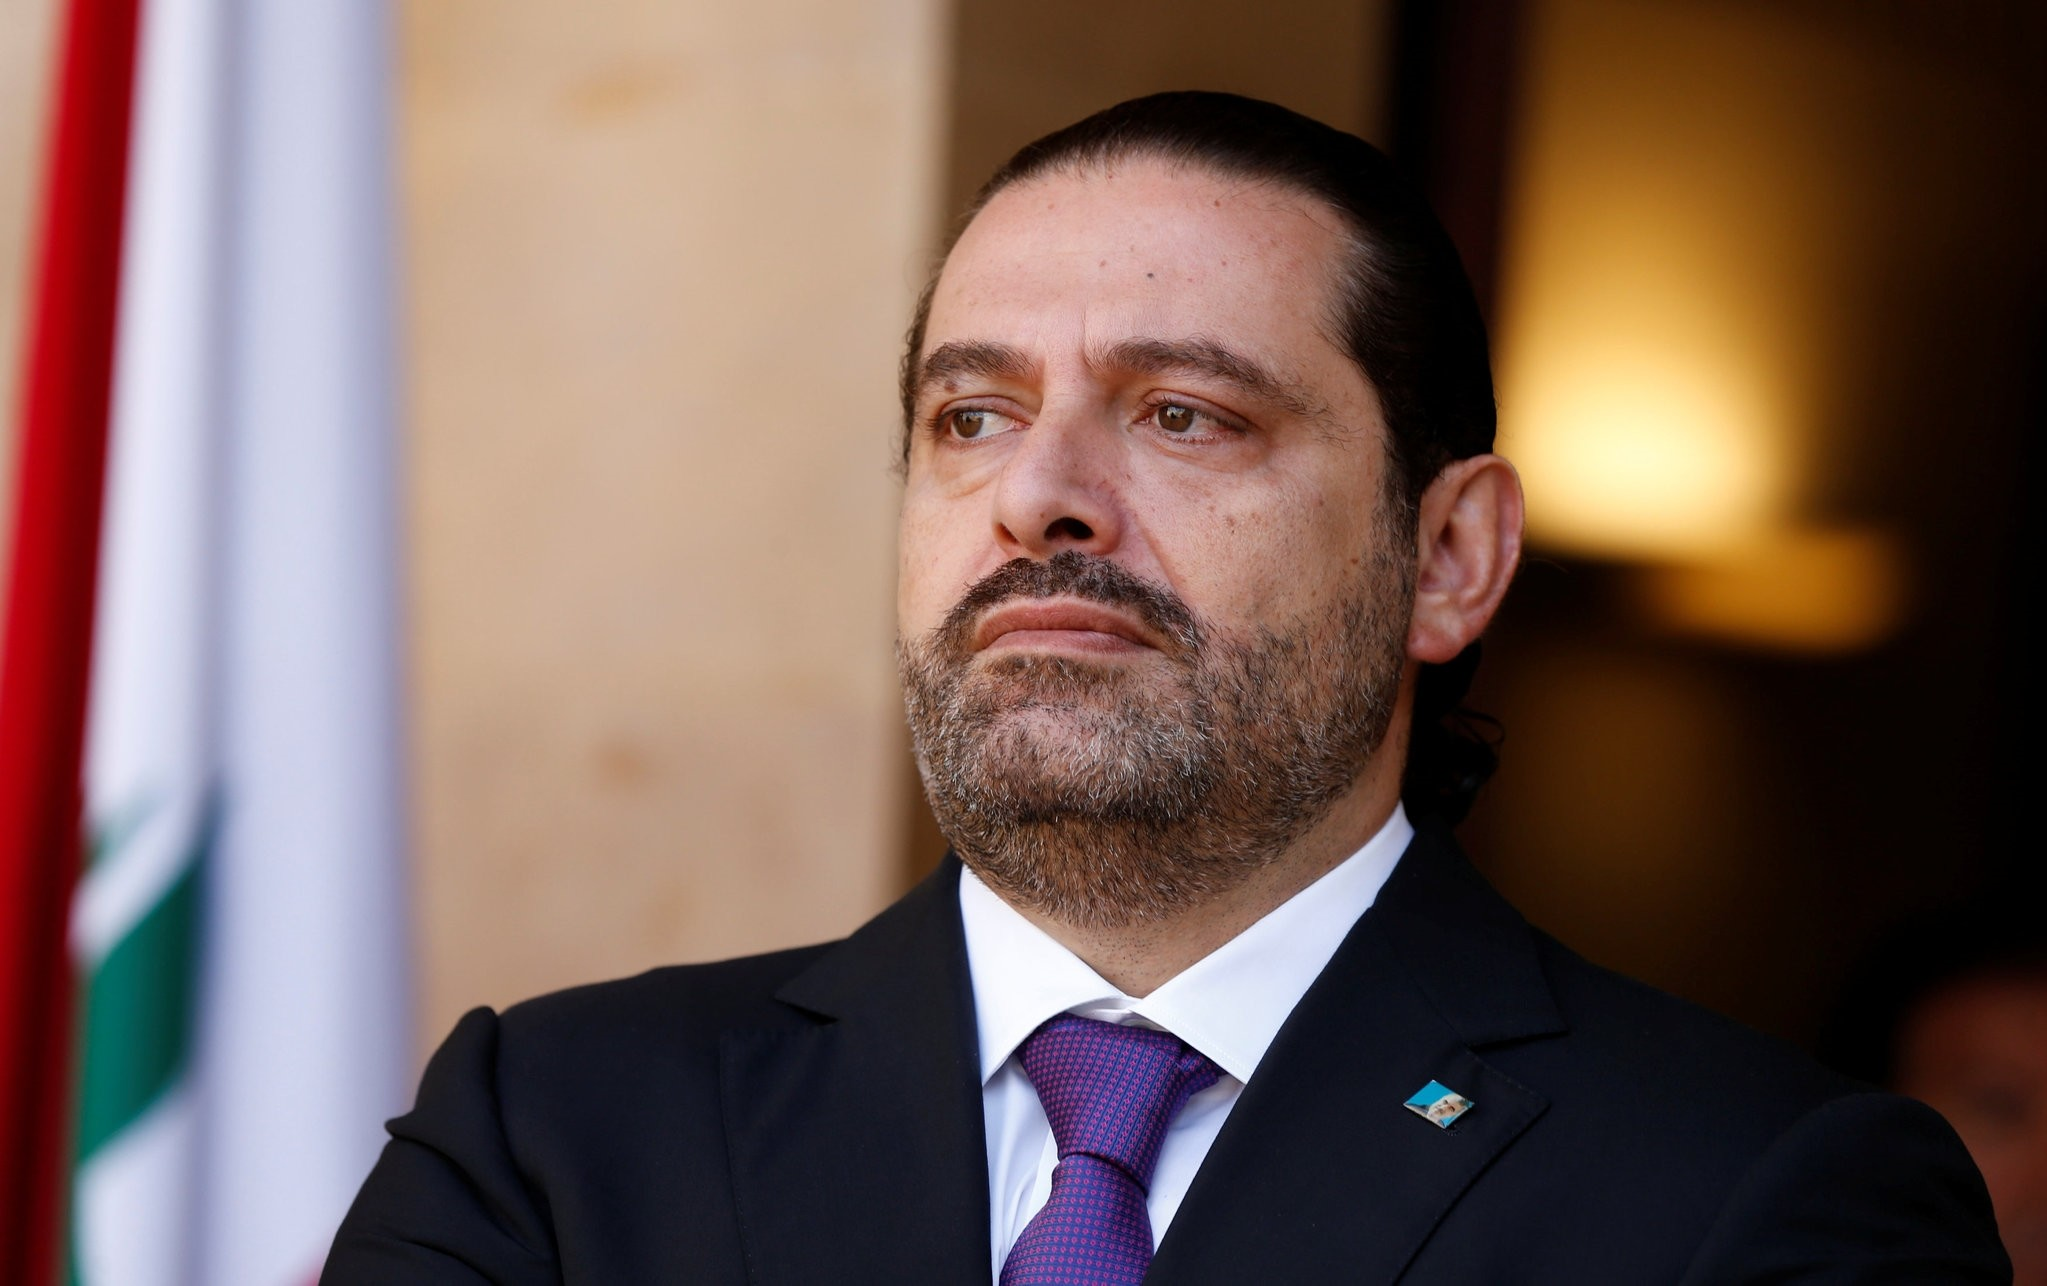 Lebanon's Prime Minister Saad al-Hariri is seen at the governmental palace in Beirut, Lebanon October 24, 2017. (REUTERS Photo)